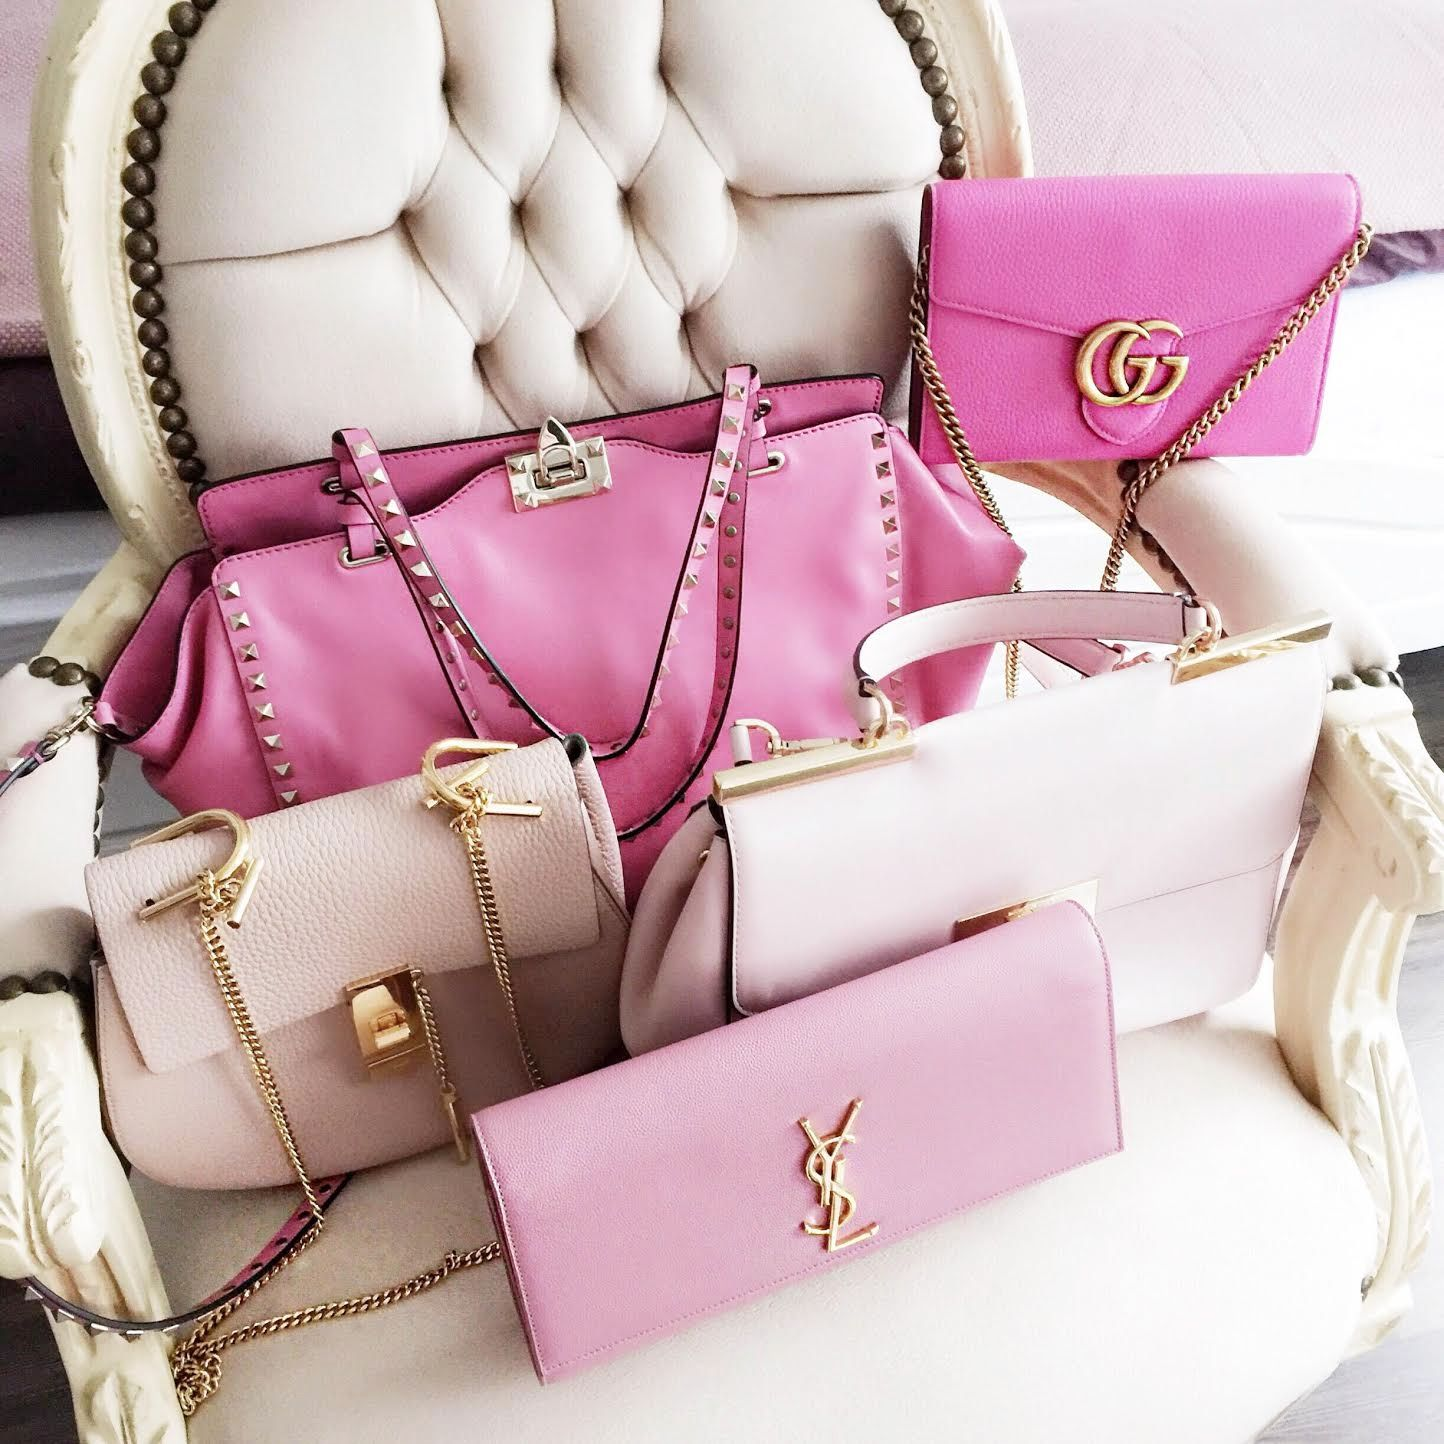 576767b40a38 5 classic pink handbags worth the investment